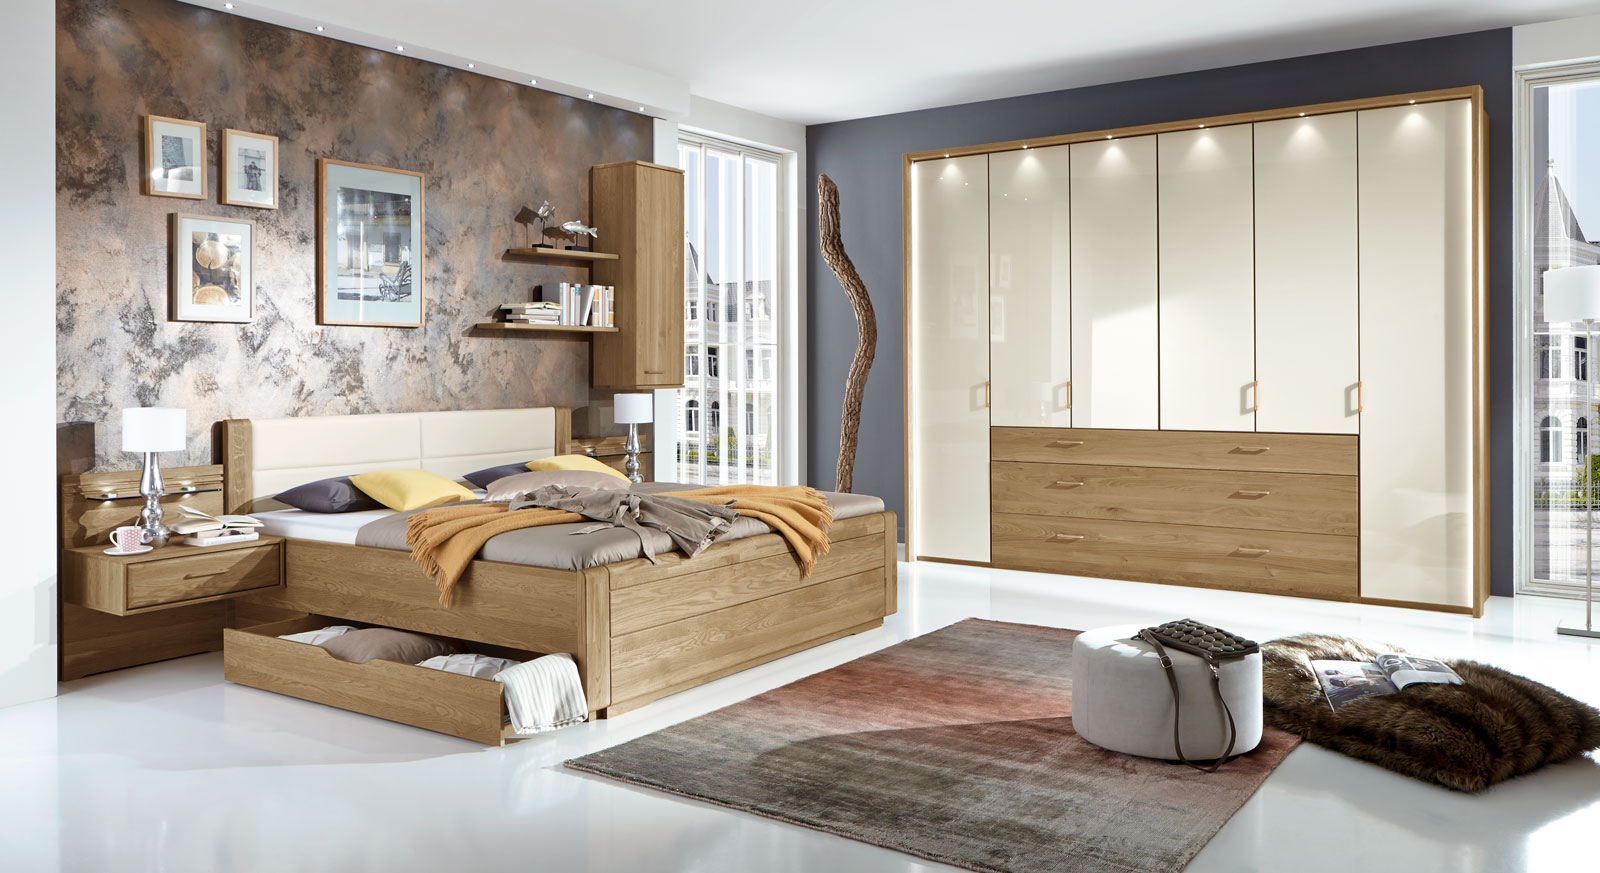 doppelbett teilmassiv in komforth he mit zwei schubladen. Black Bedroom Furniture Sets. Home Design Ideas